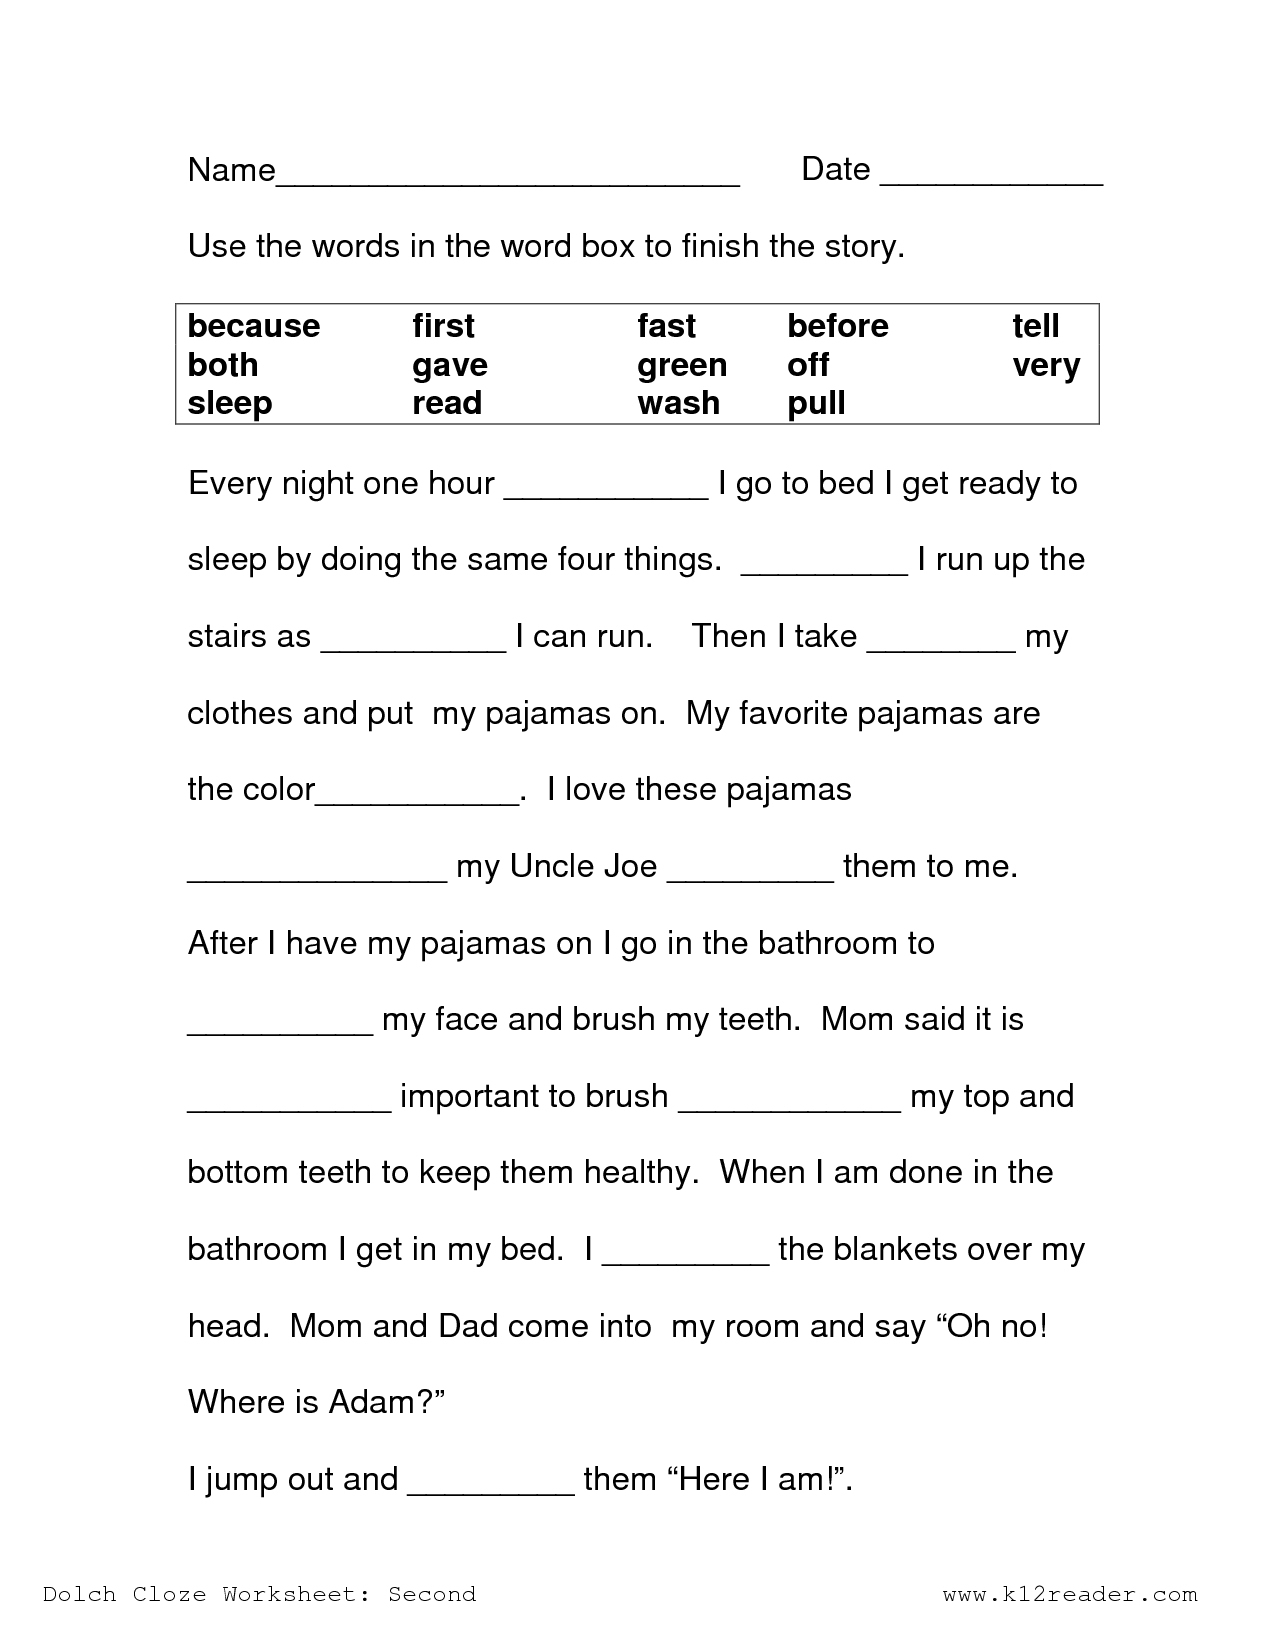 Math Worksheet: 2Nd Grade Science Worksheets Free Printable Easy | Free Printable Fifth Grade Science Worksheets